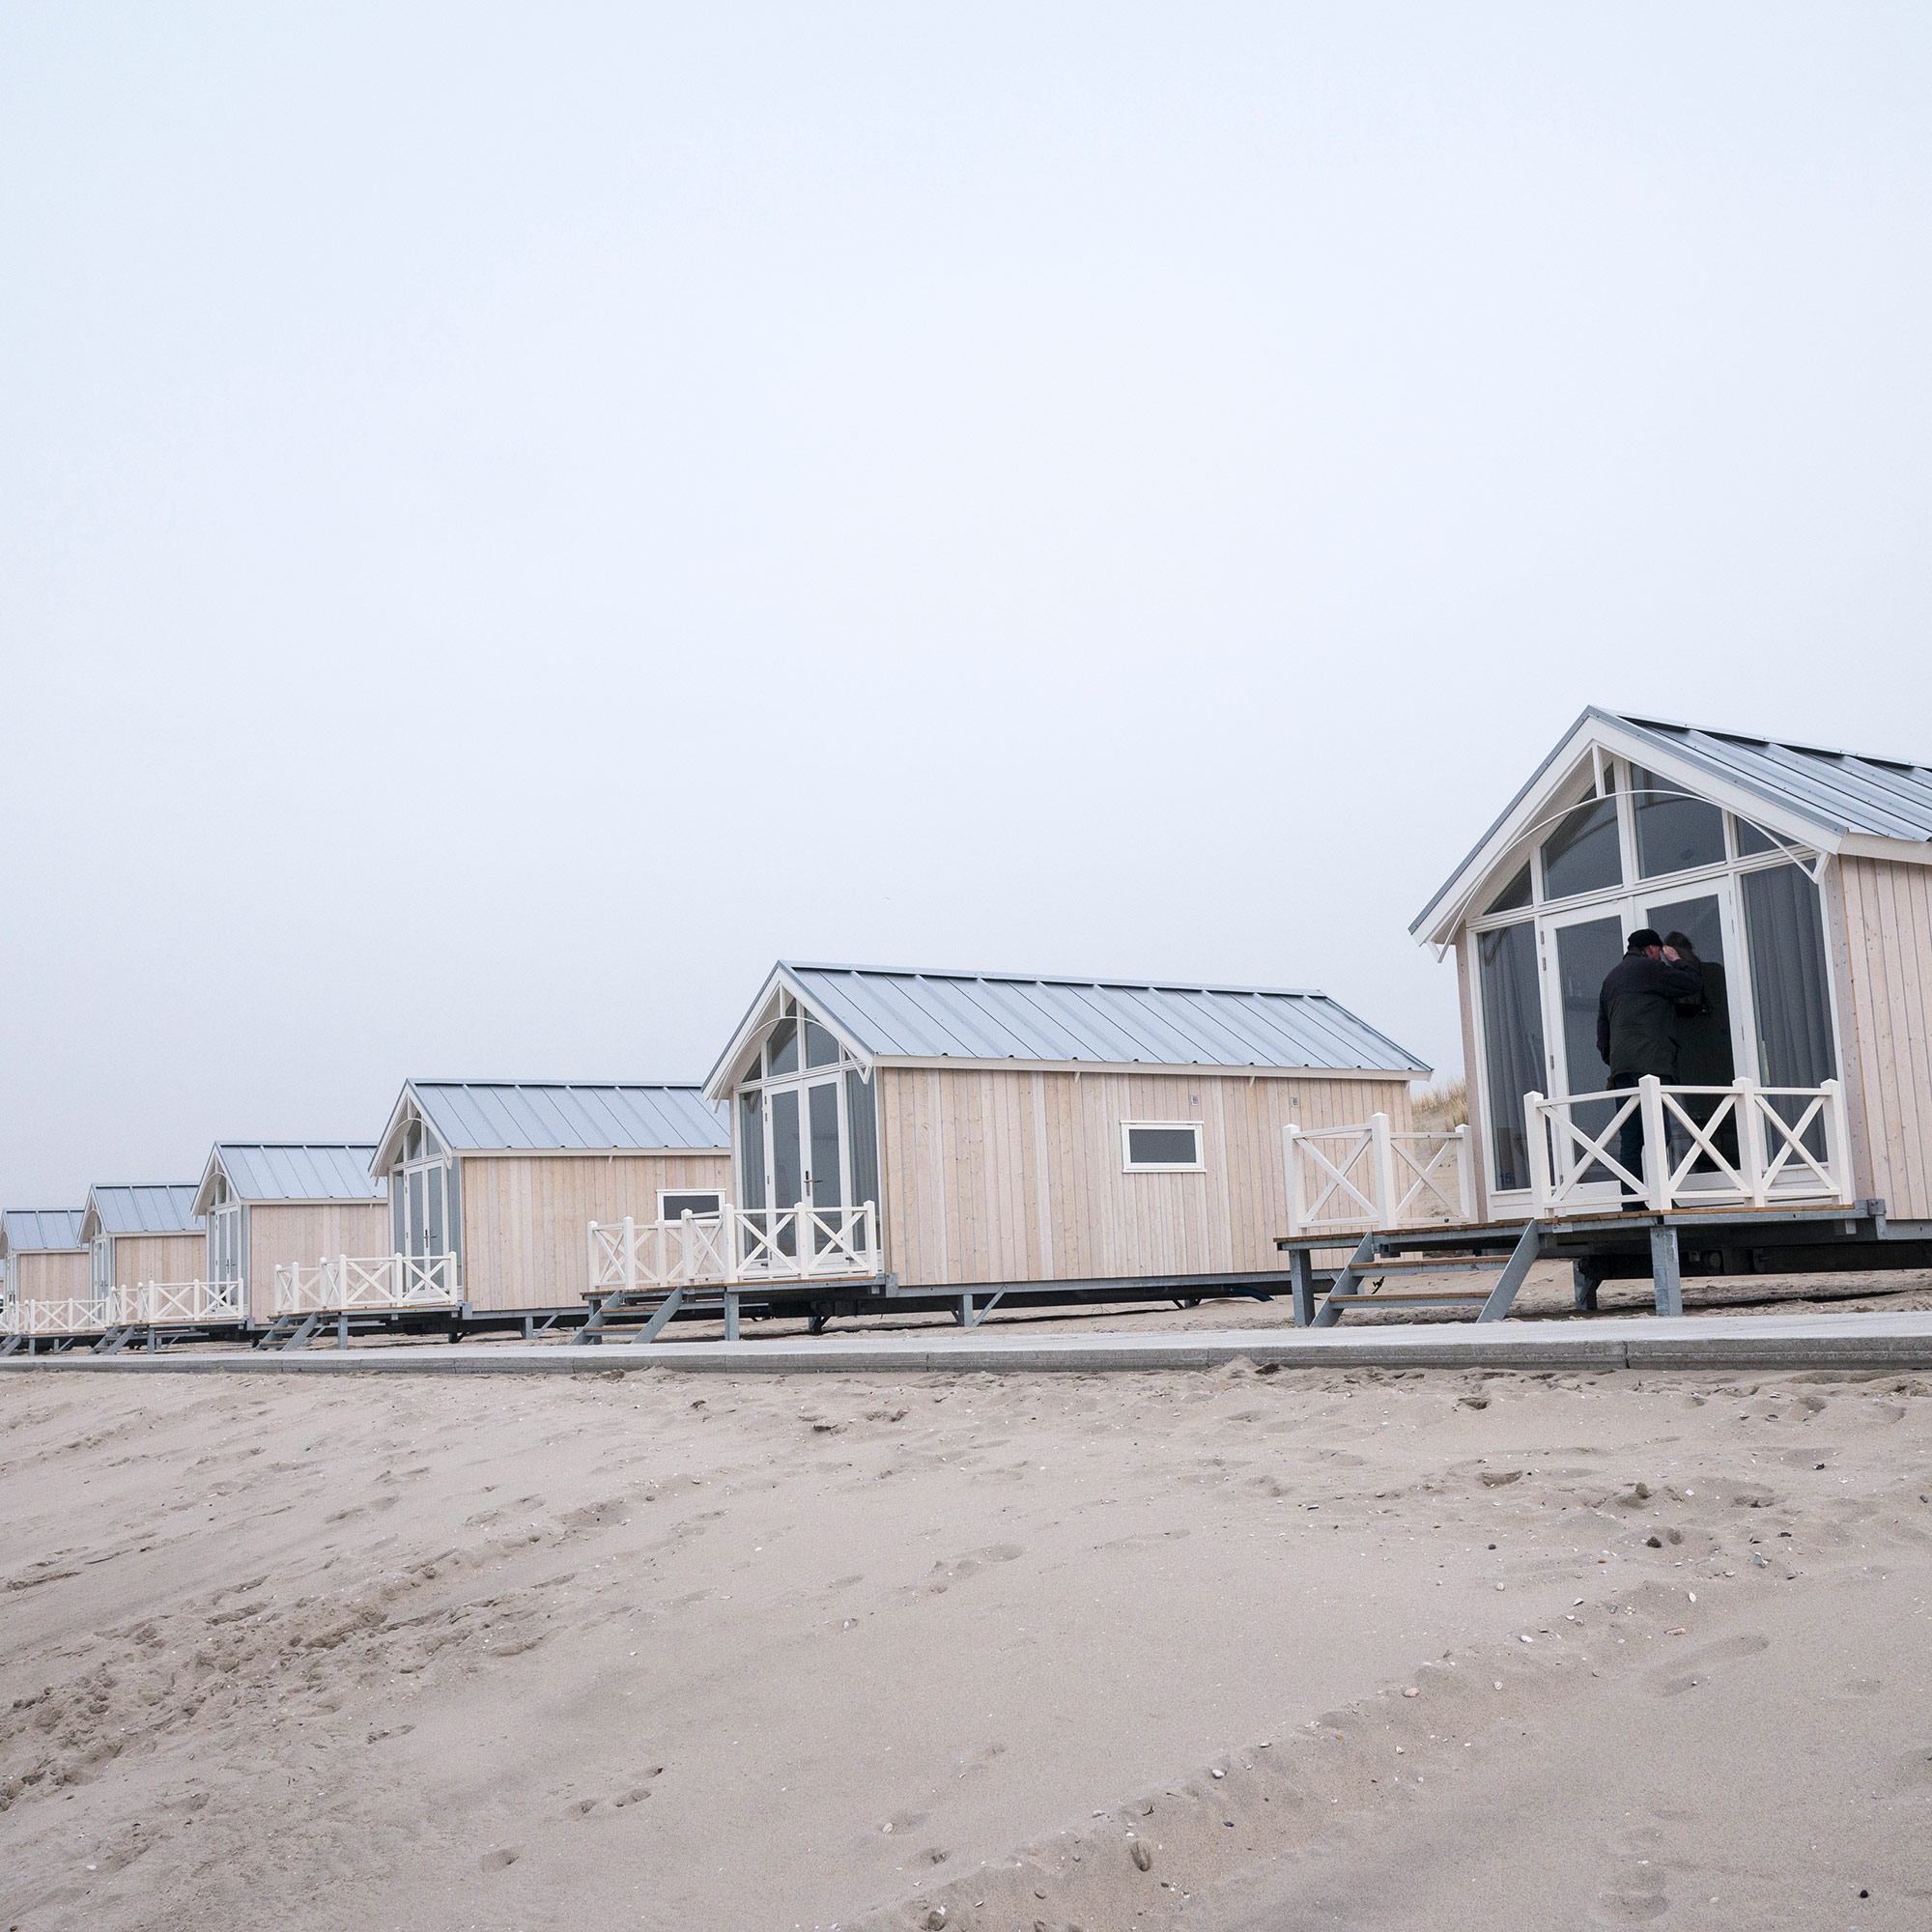 Because of the Zandmoter, there are hopes for more beach tourism. There is space between these new beach houses so the sand can flow naturally towards the dunes, creating a natural defense barrier against the water. (Photo by Joris van Gennip/GroundTruth)